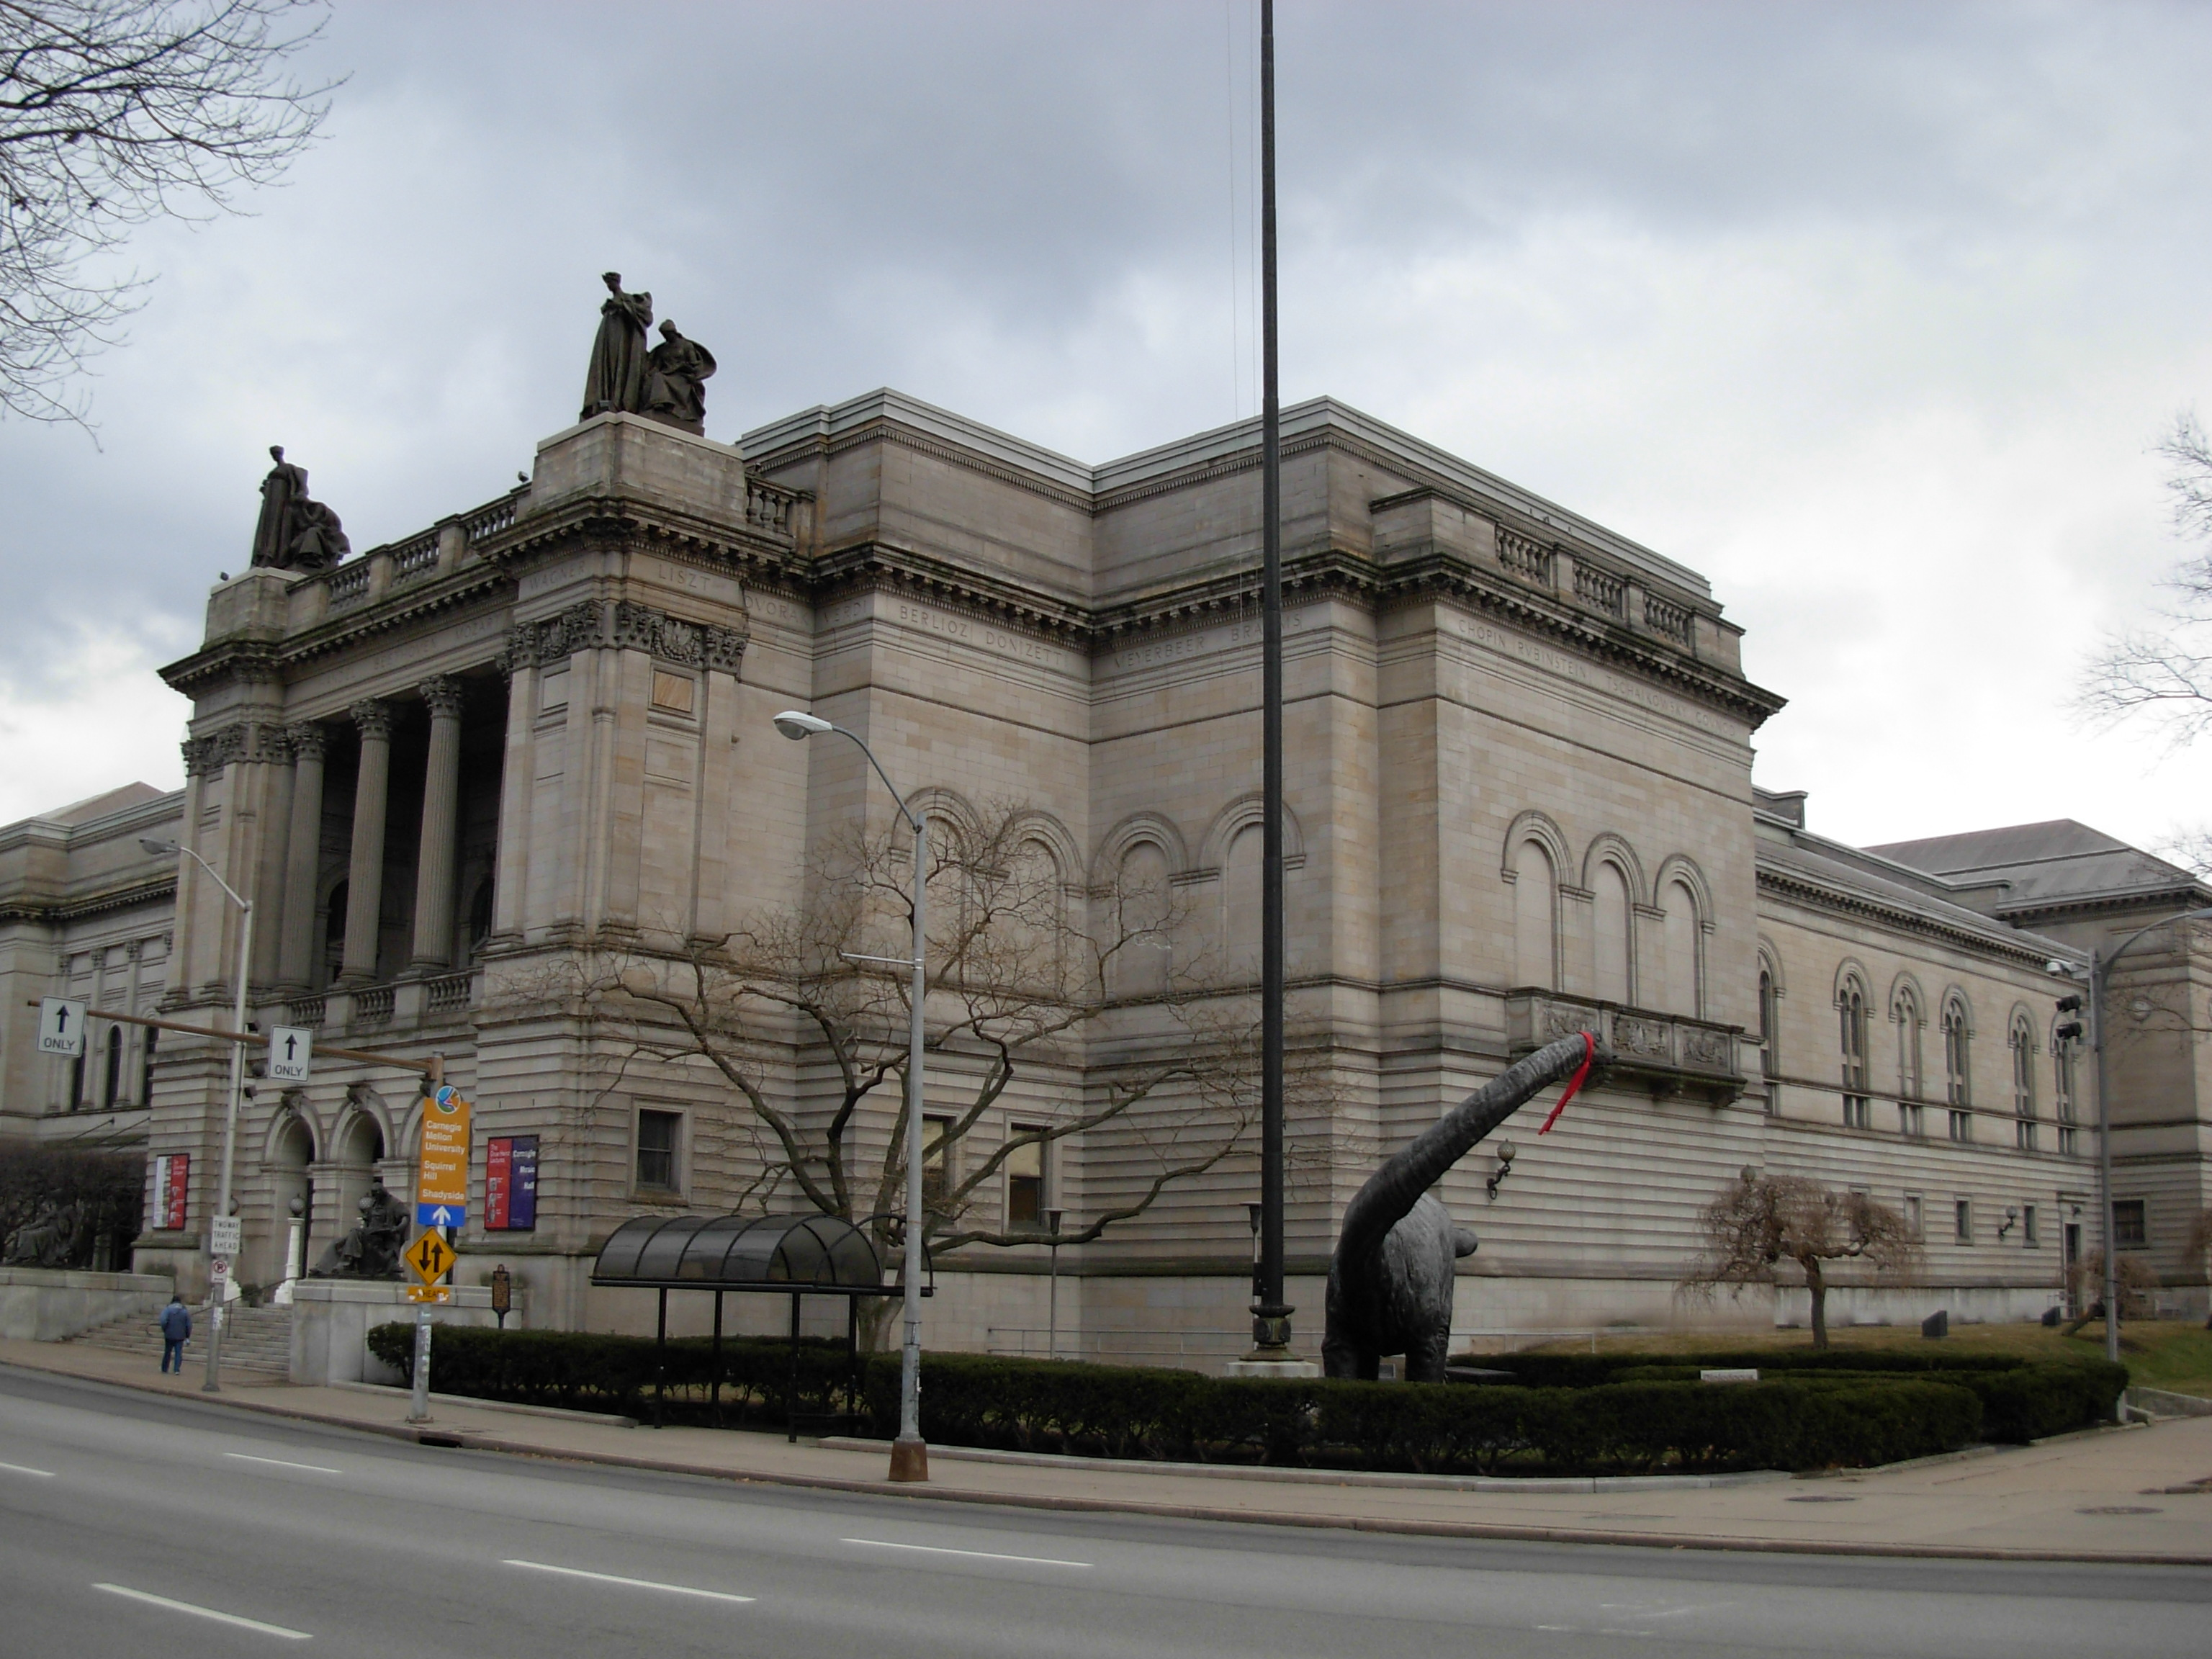 https://upload.wikimedia.org/wikipedia/commons/5/5f/Carnegie_Museum_of_Natural_History_04.JPG